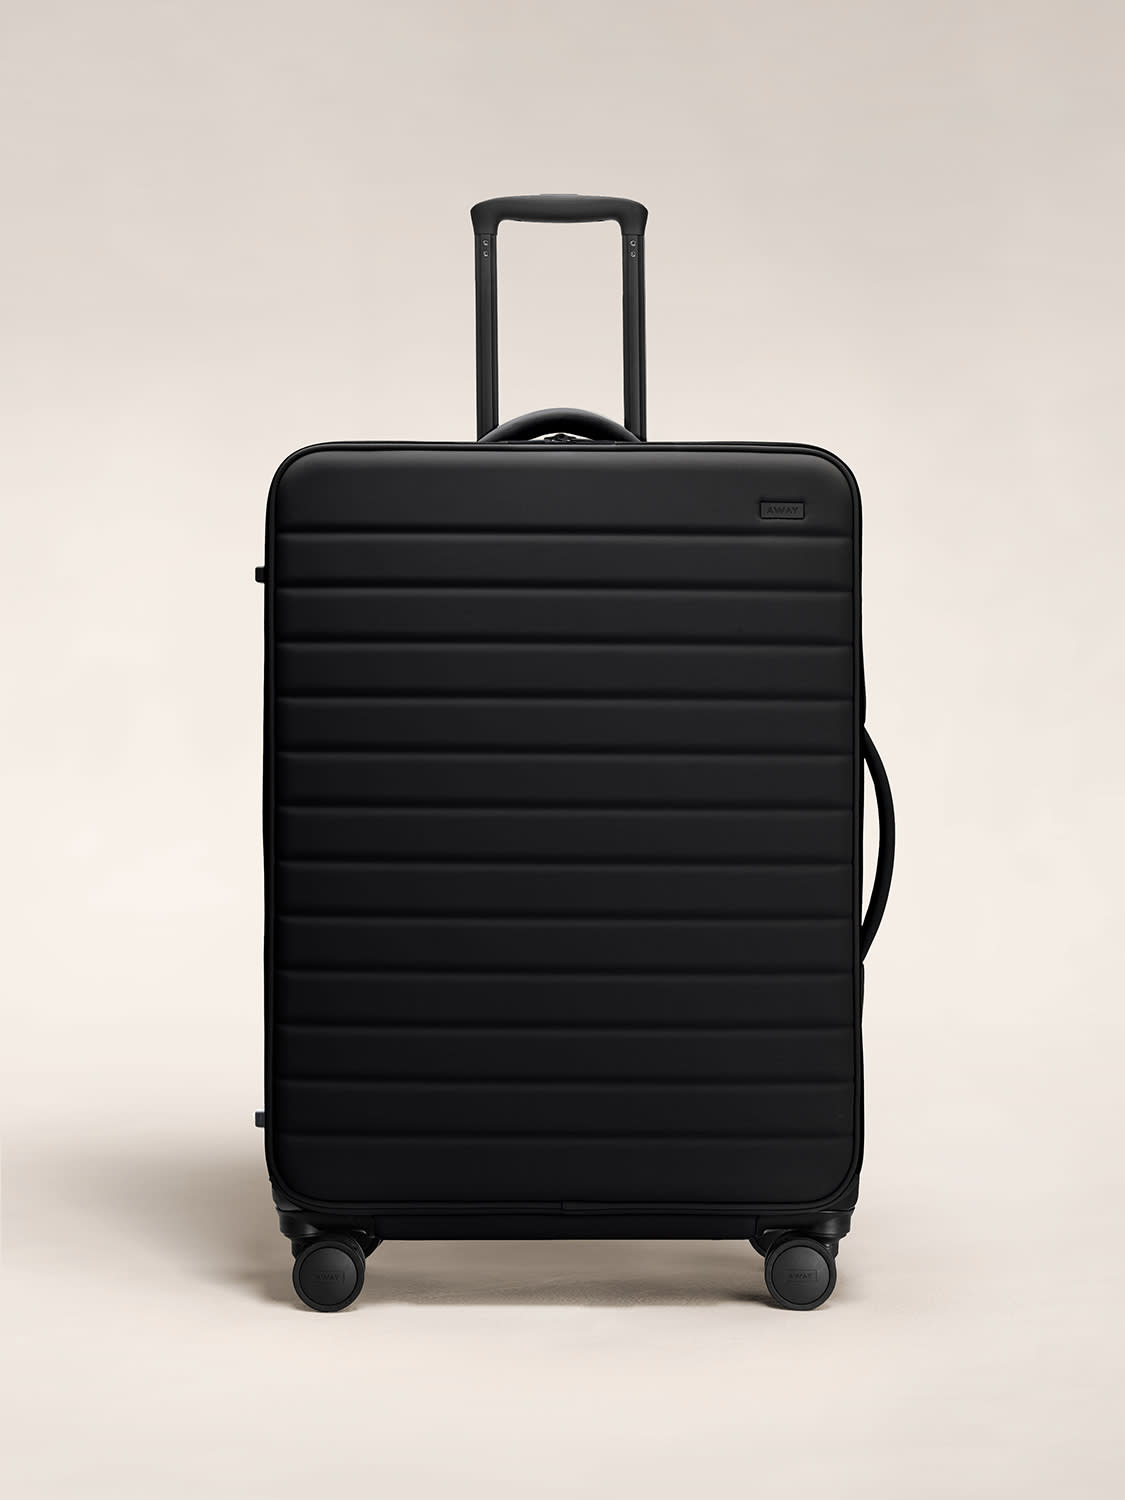 The Large softside Expandable suitcase in Black